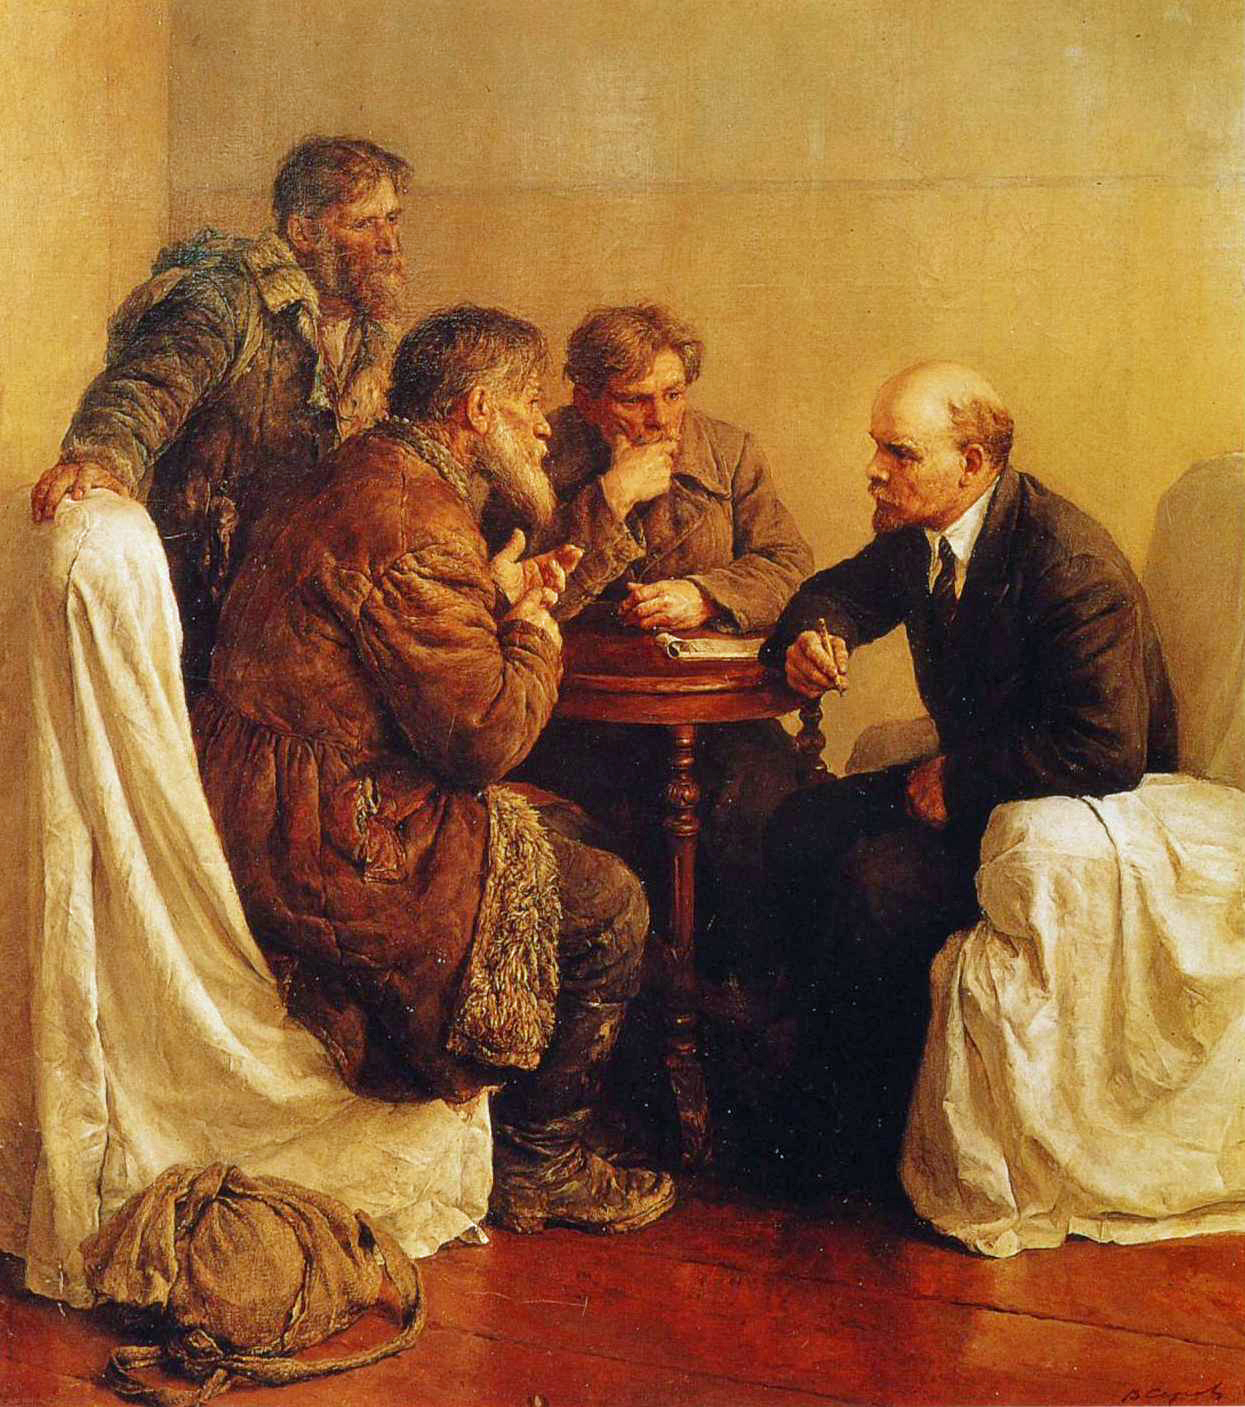 Vladimir Serov - Peasant Petitioners Visiting Lenin